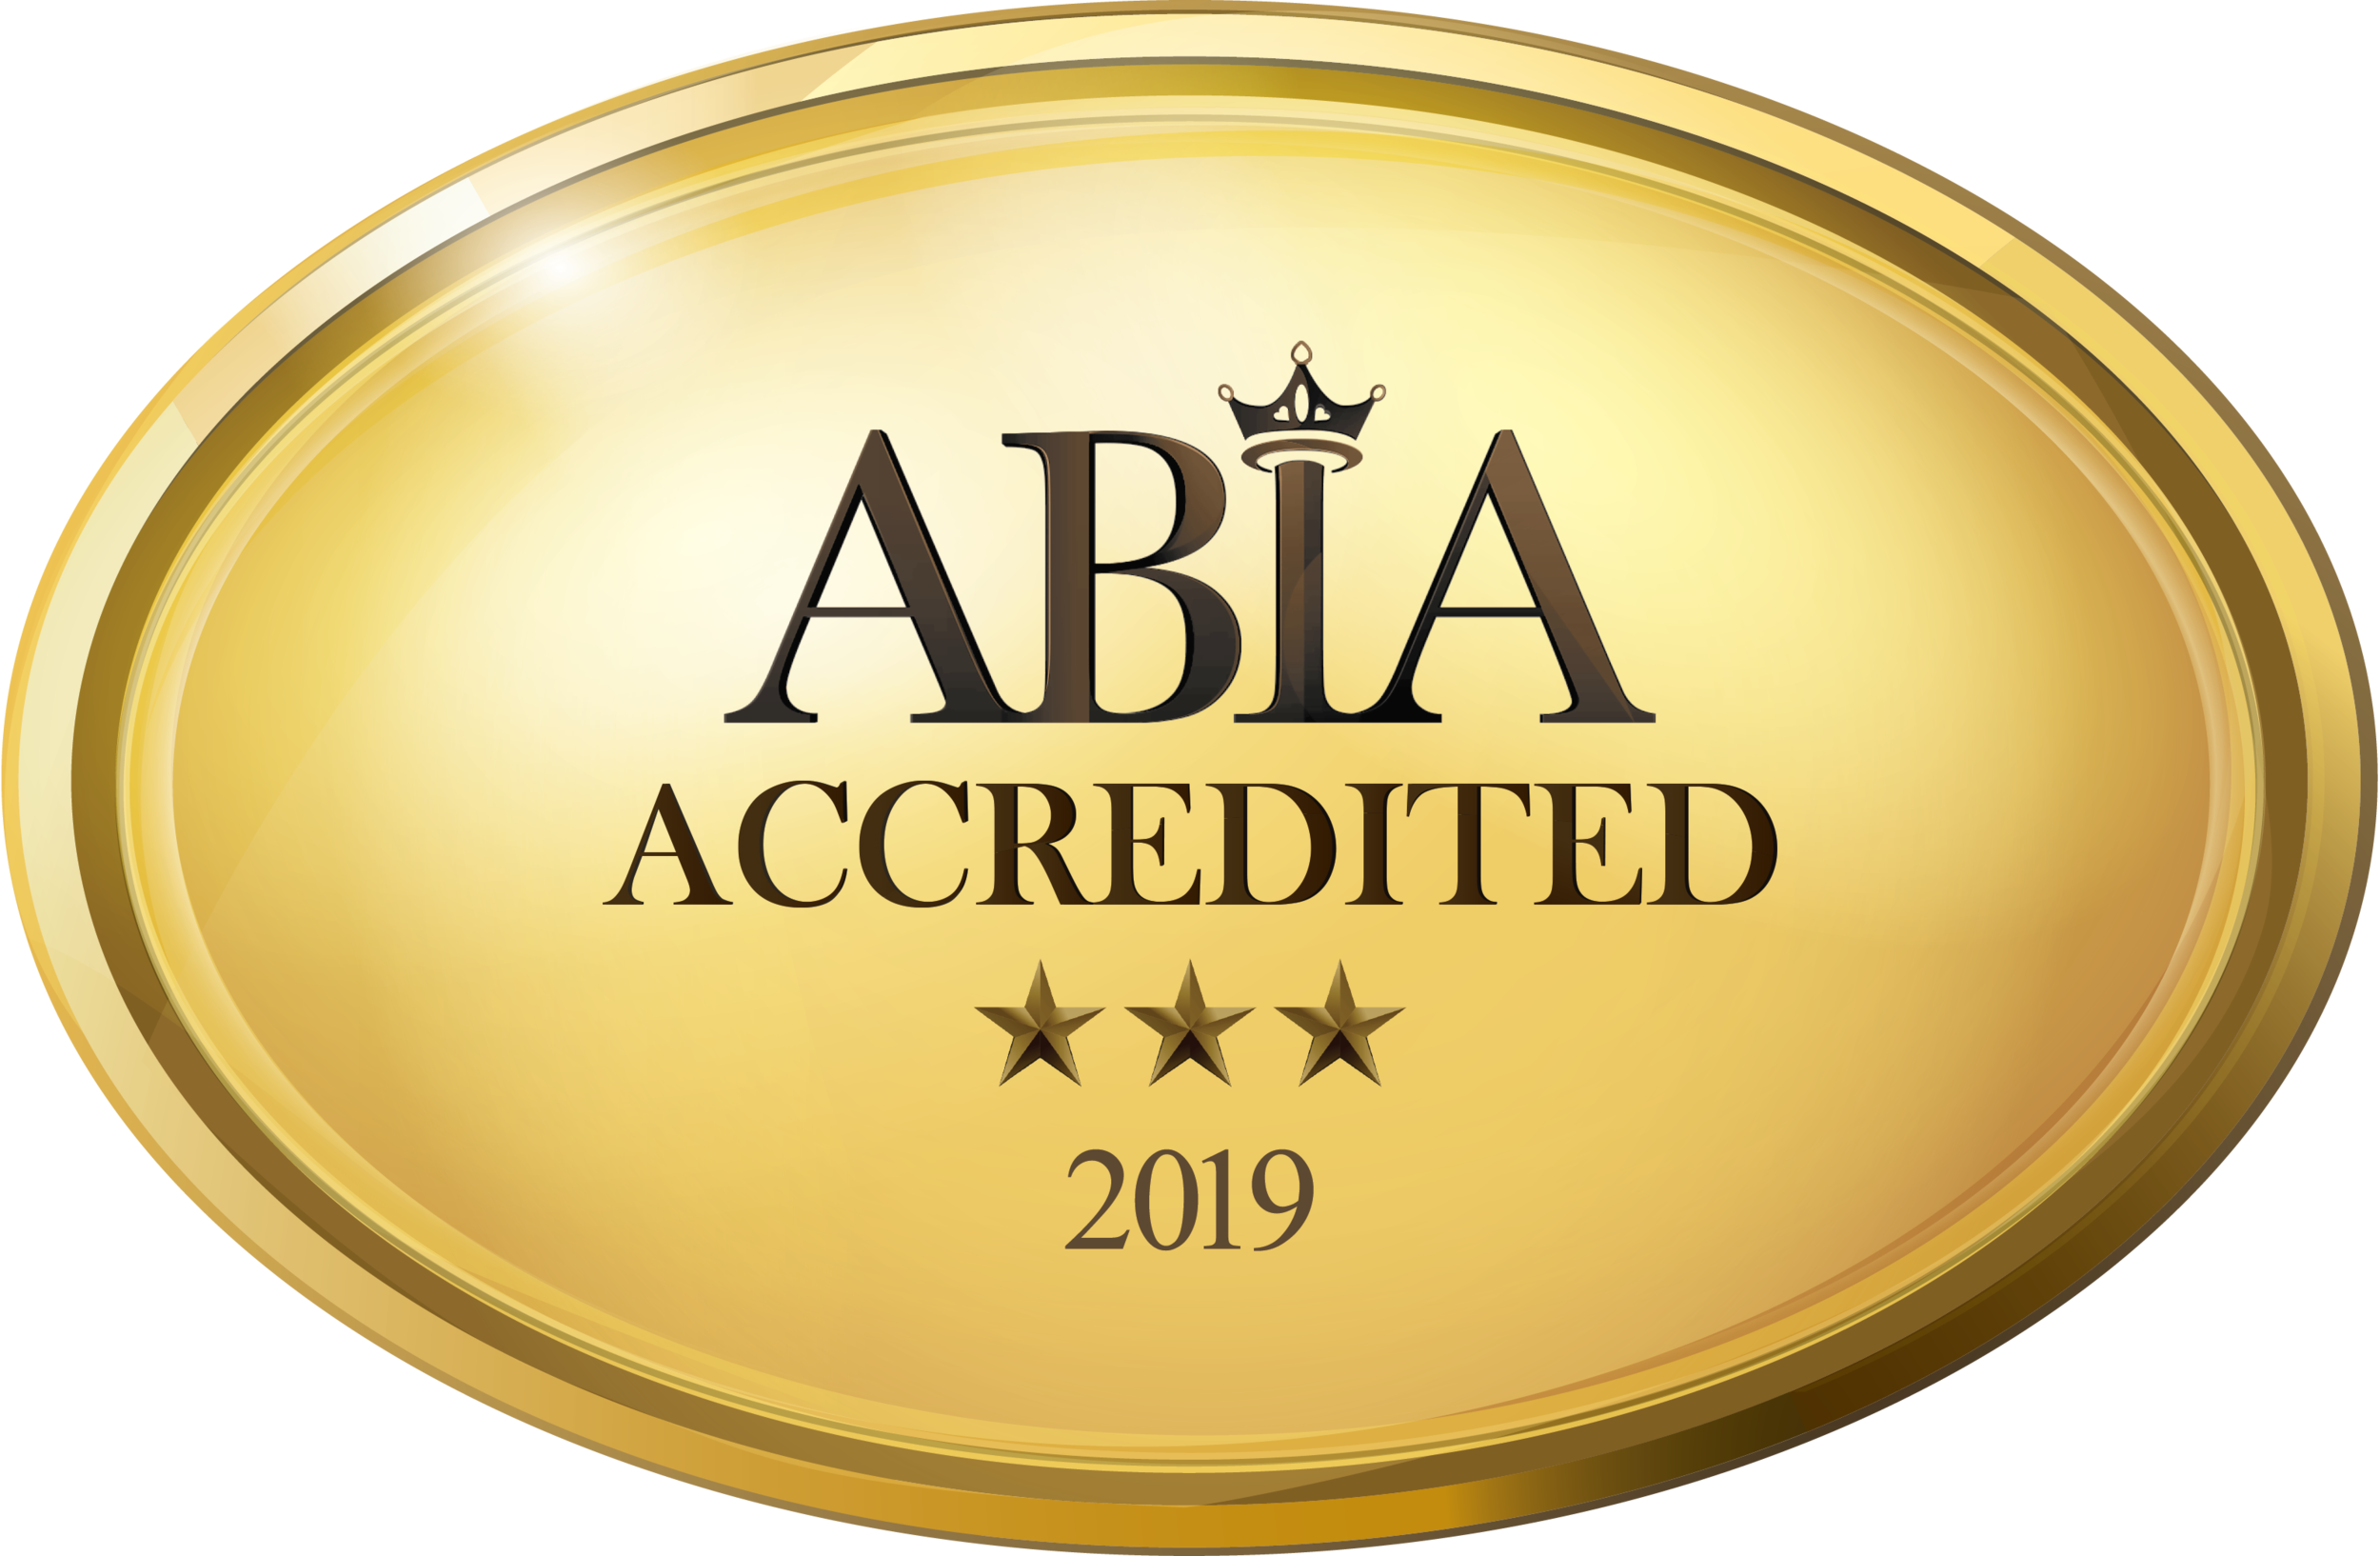 Australian Bridal Industry Awards Associate - Sweet Art Creations Cakes are proud to be part of ABIA. Thank you to all my brides and grooms for rating my services with ABIA.